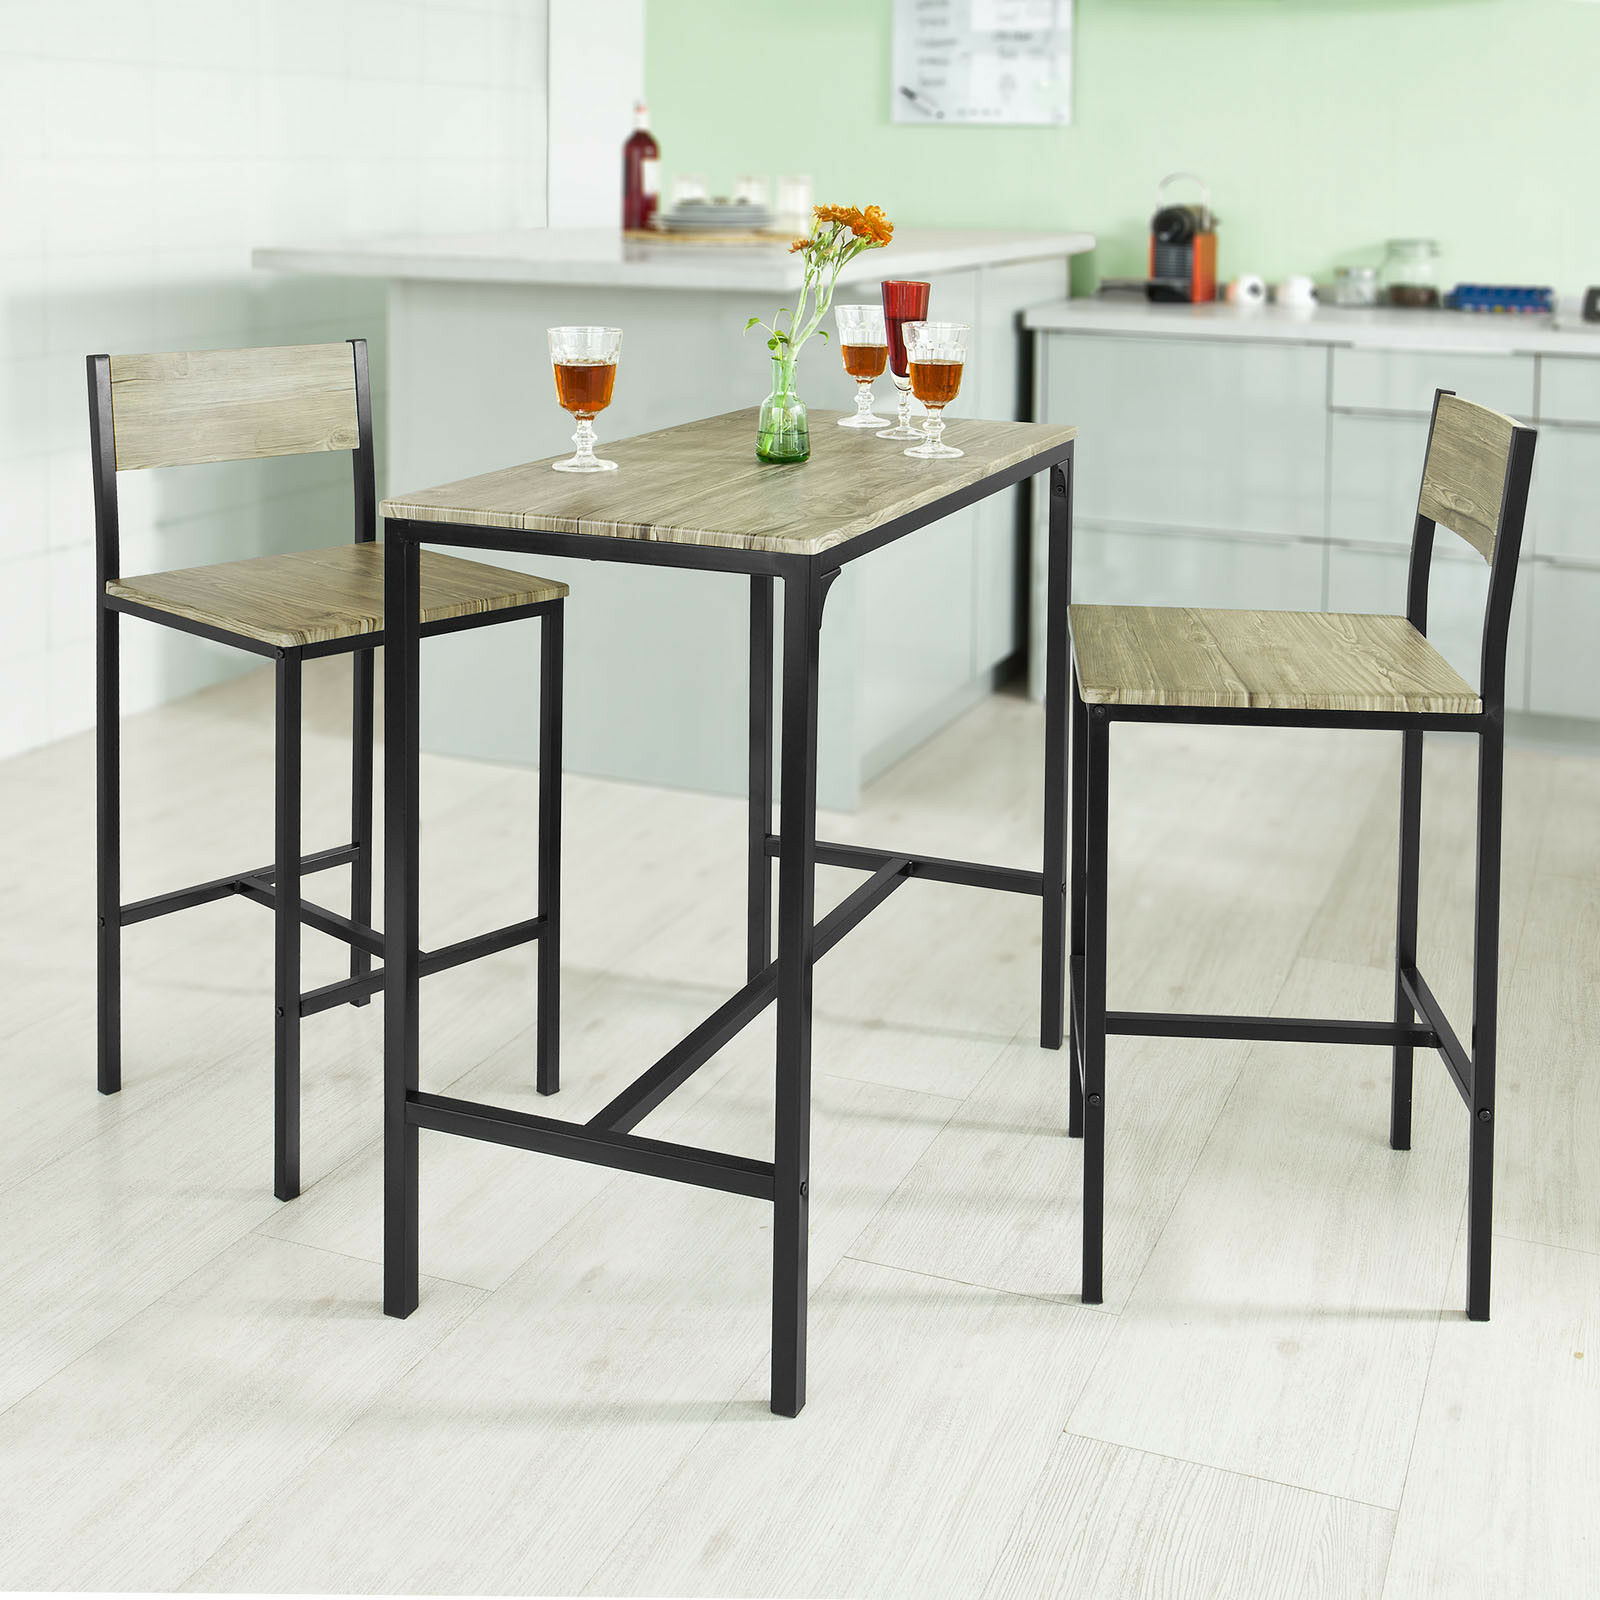 Uk Sobuy Kitchen Dining Breakfast Bar Table And 2 High